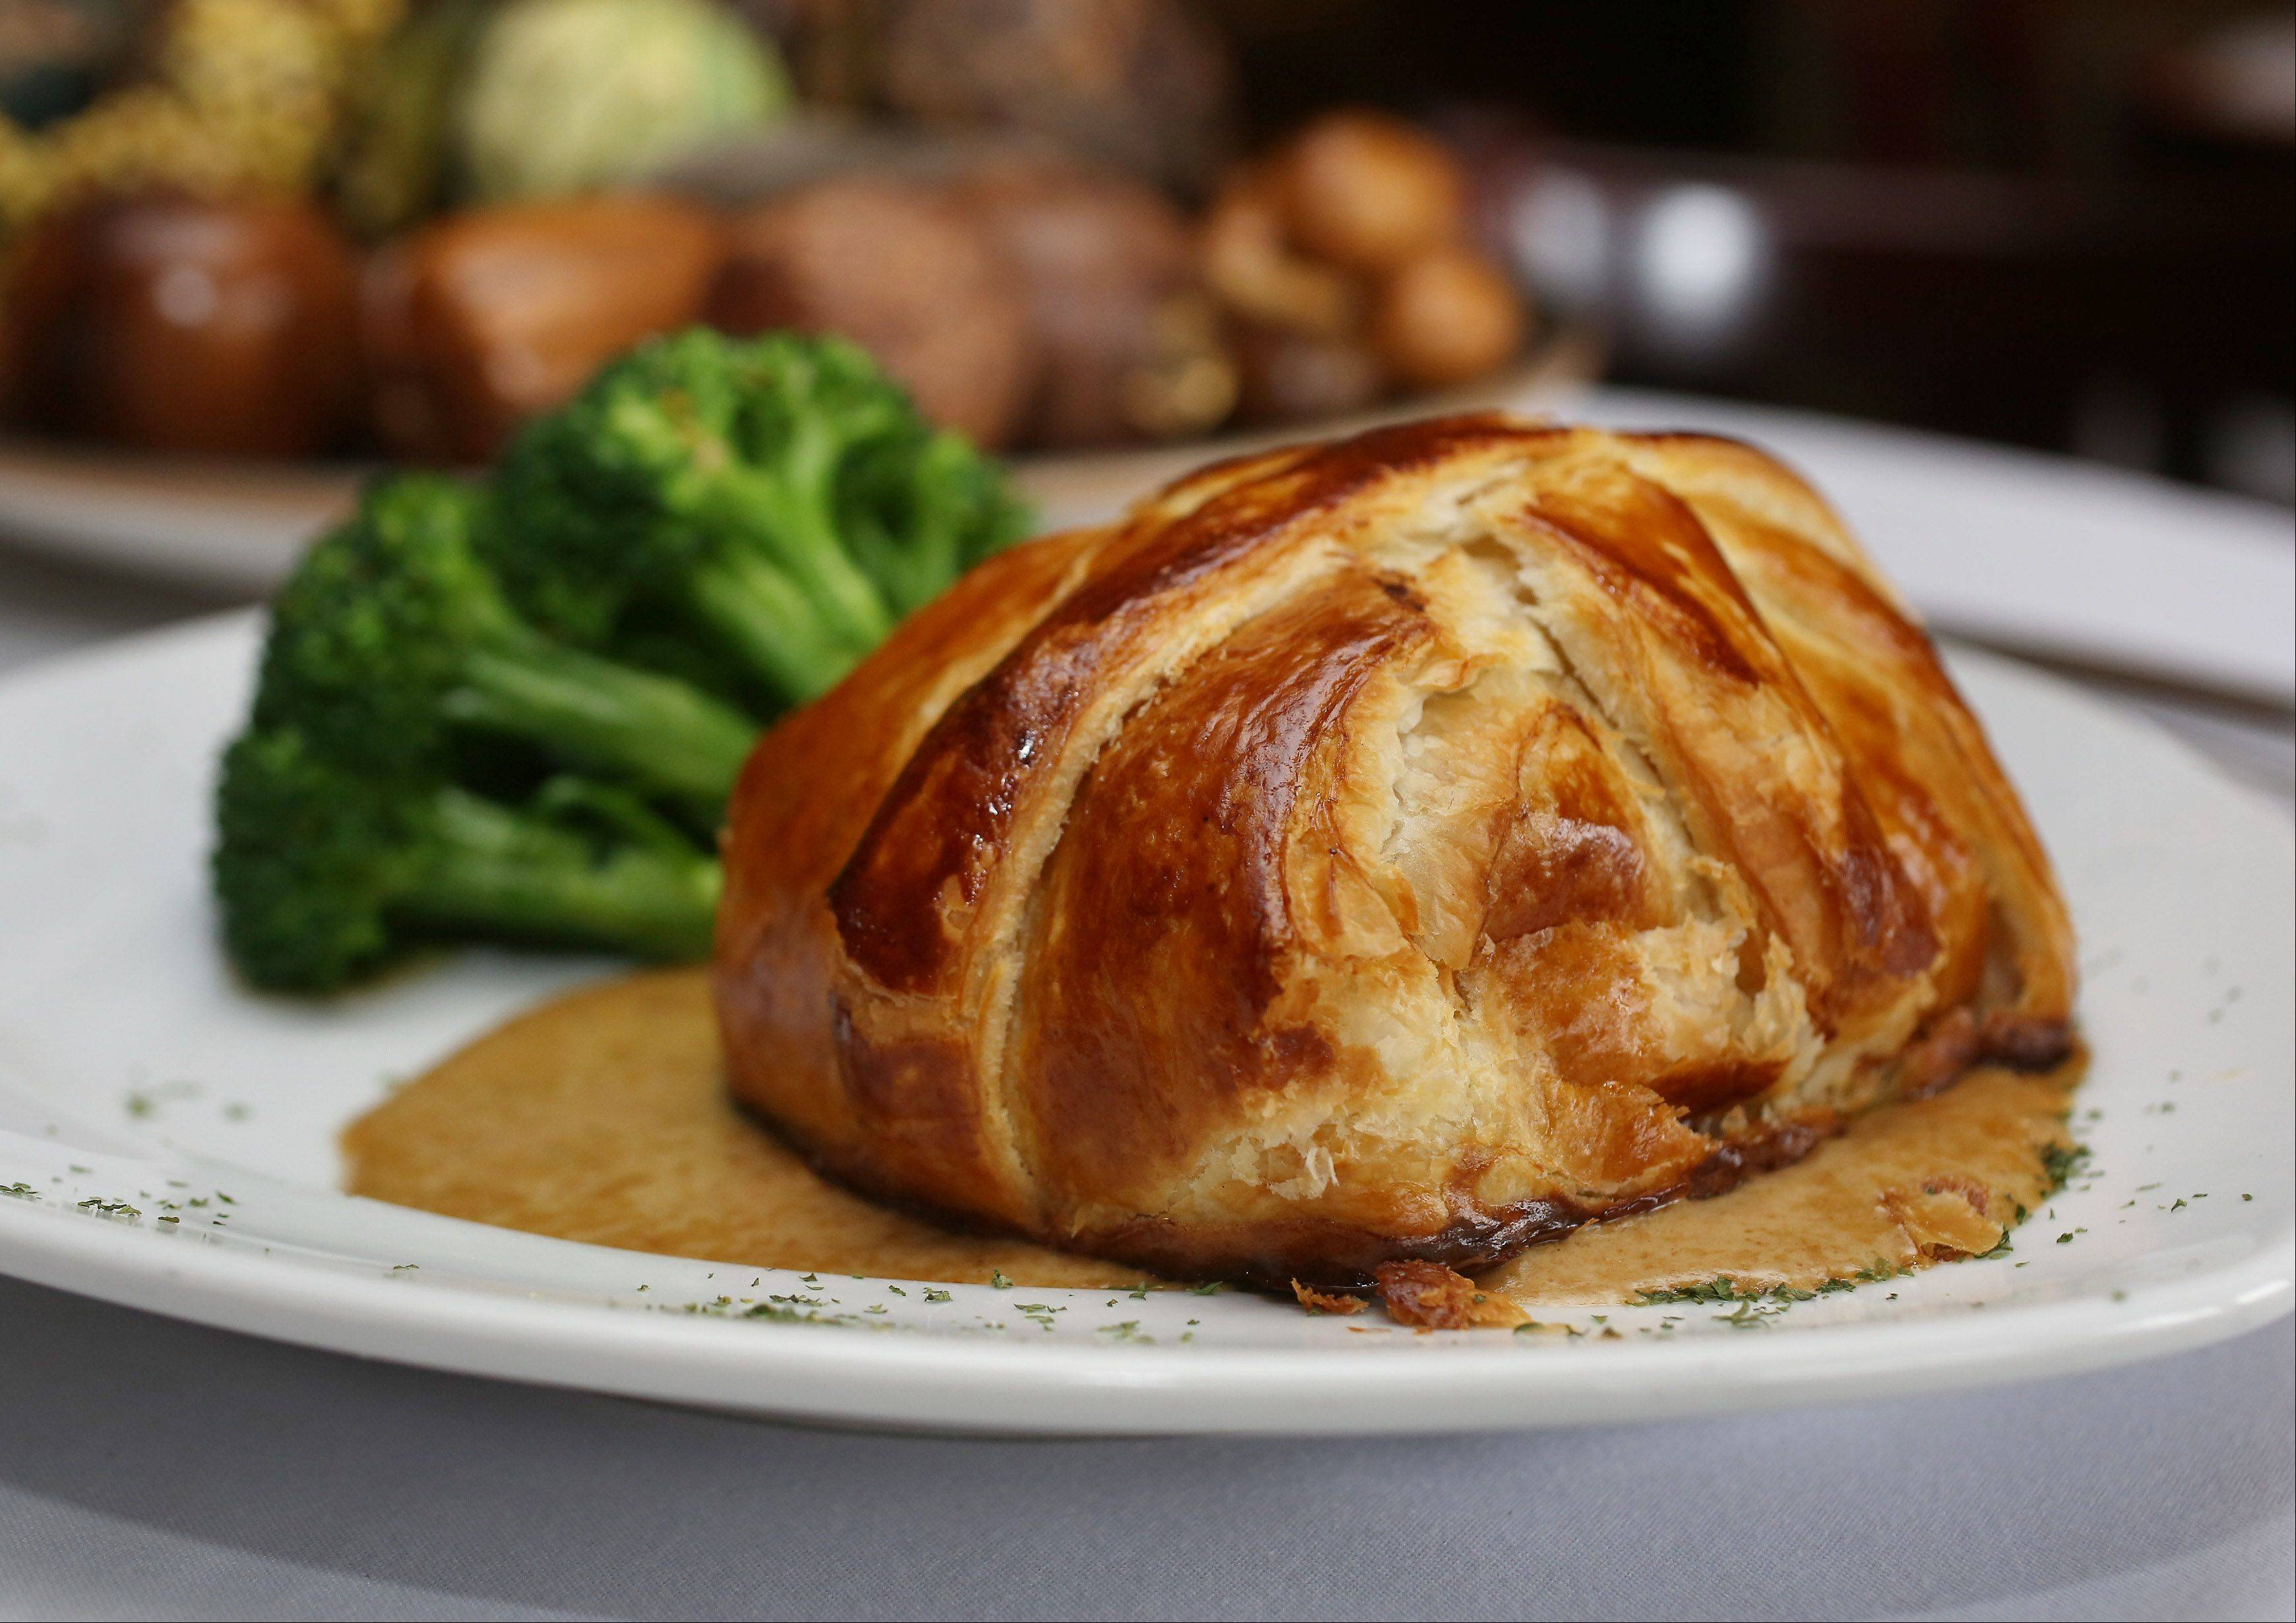 Beef Wellington, with its traditional puff pastry, earns high marks at Stevens' in Gurnee.